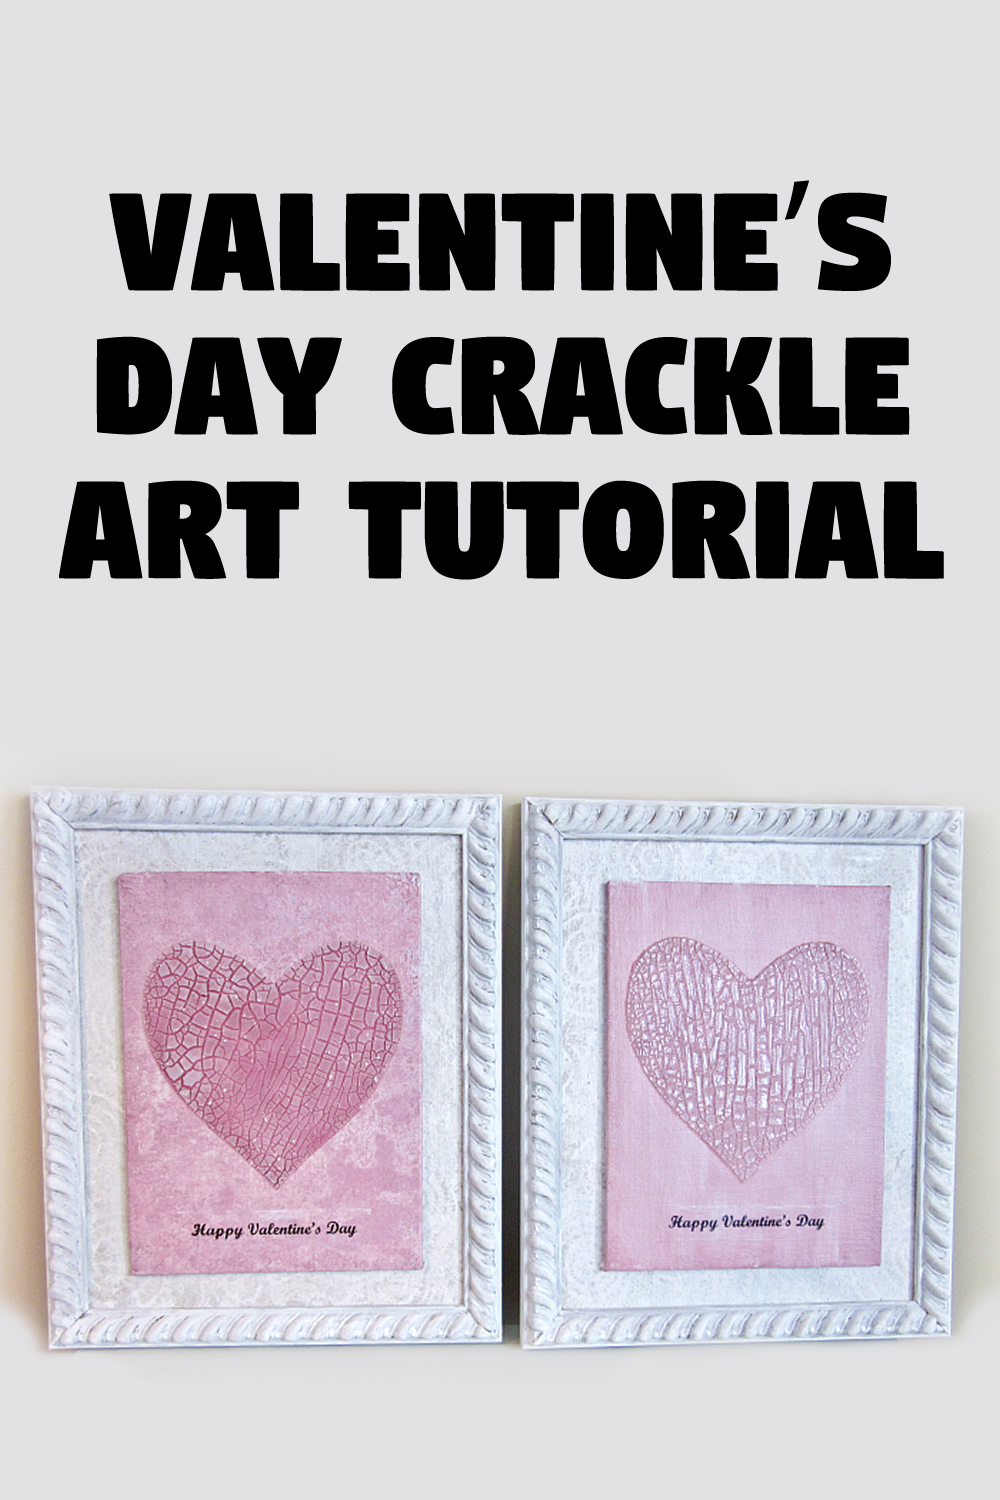 Valentine's Day Crackle Art Tutorial